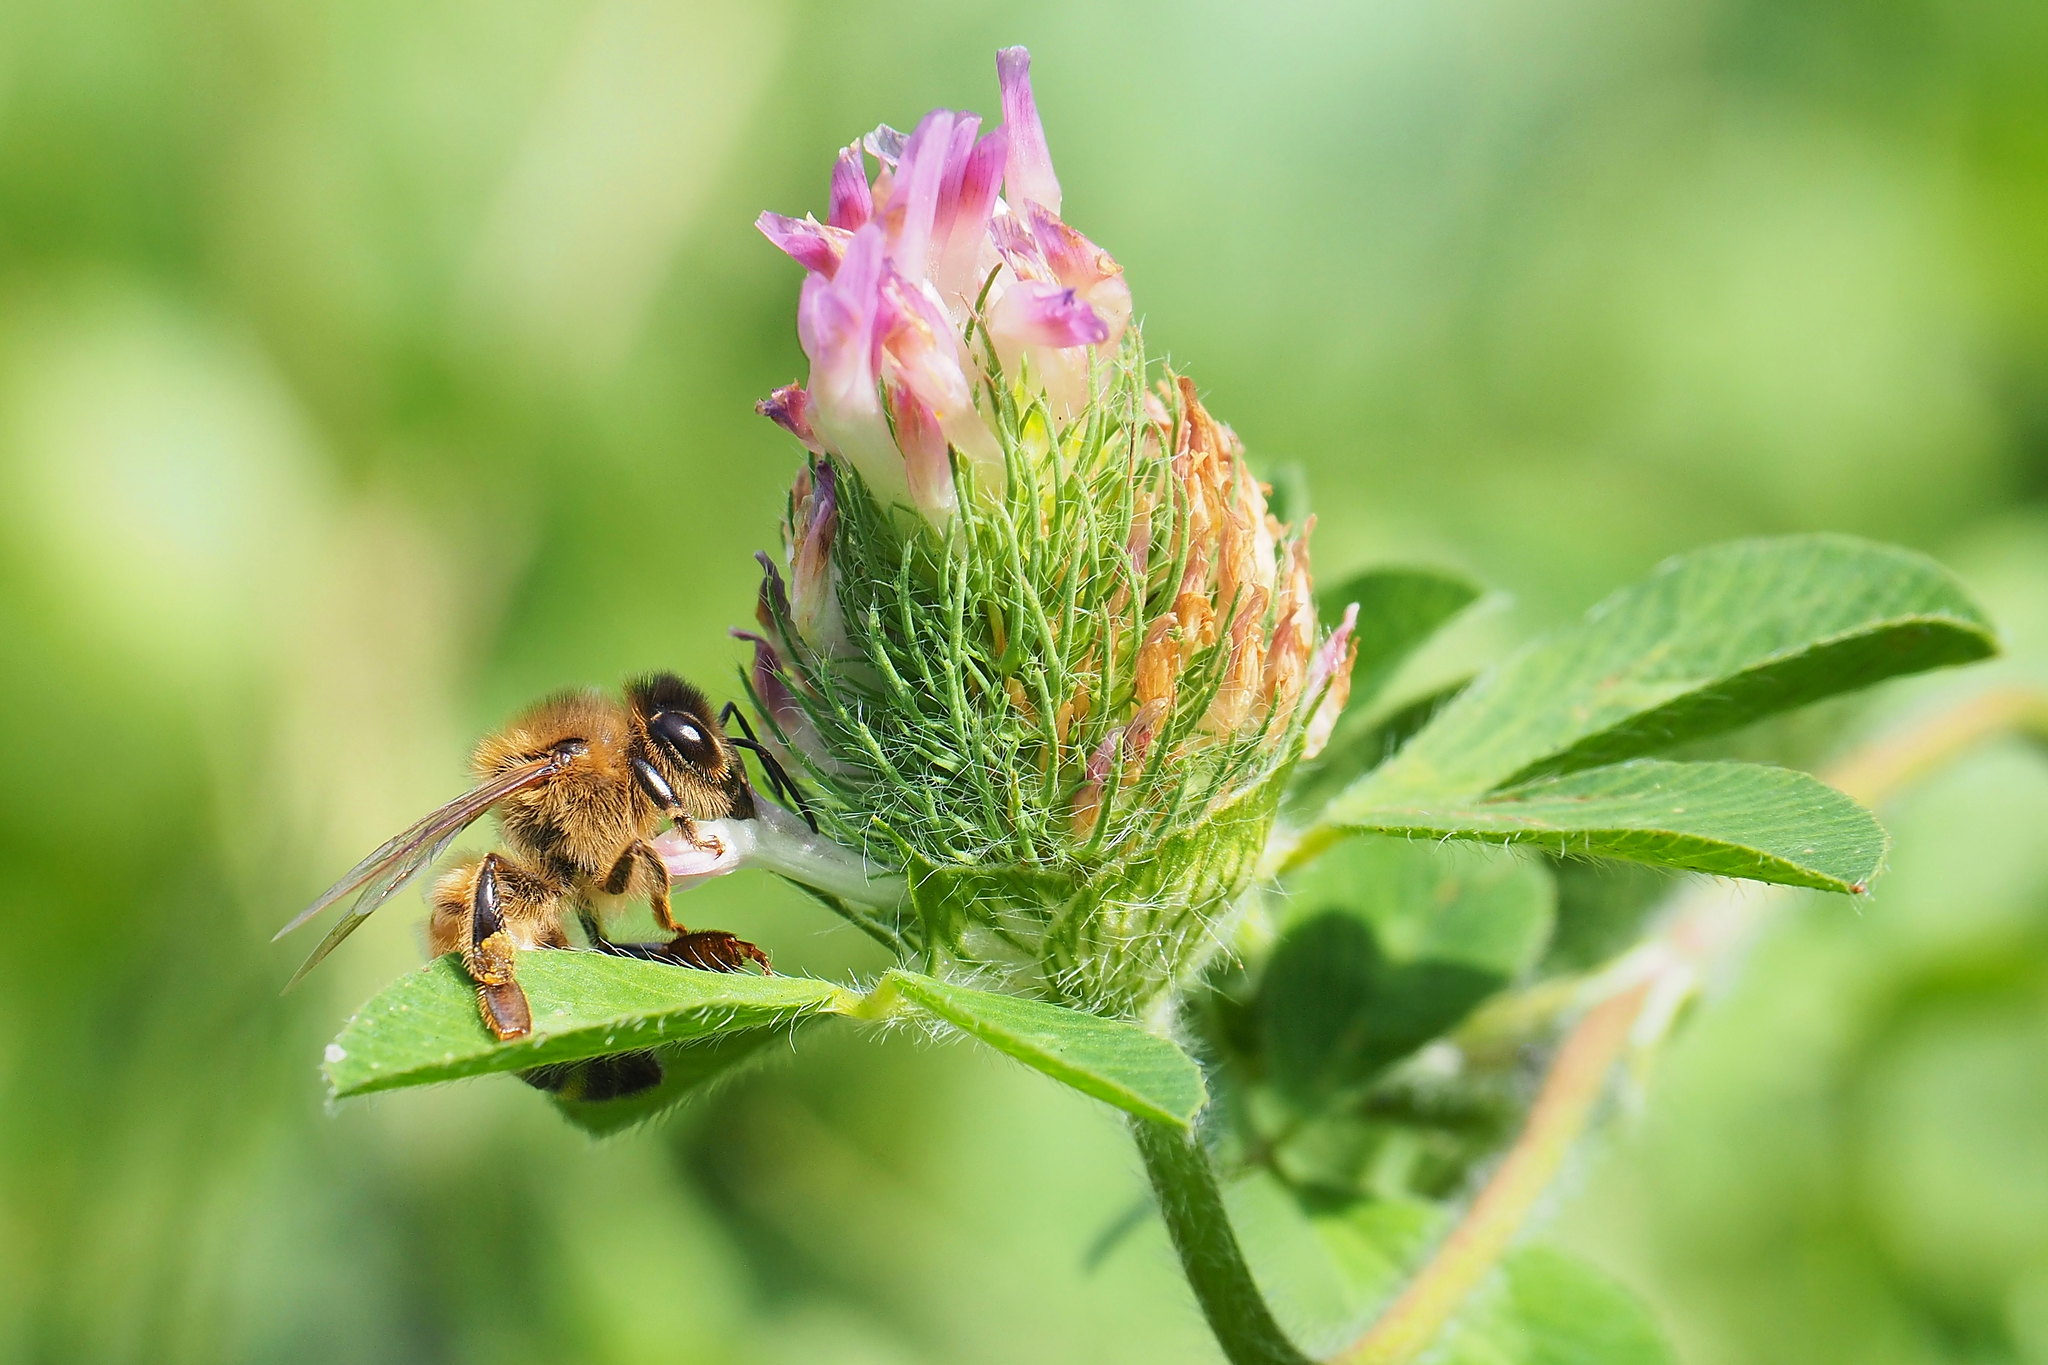 A bee on a clover flower